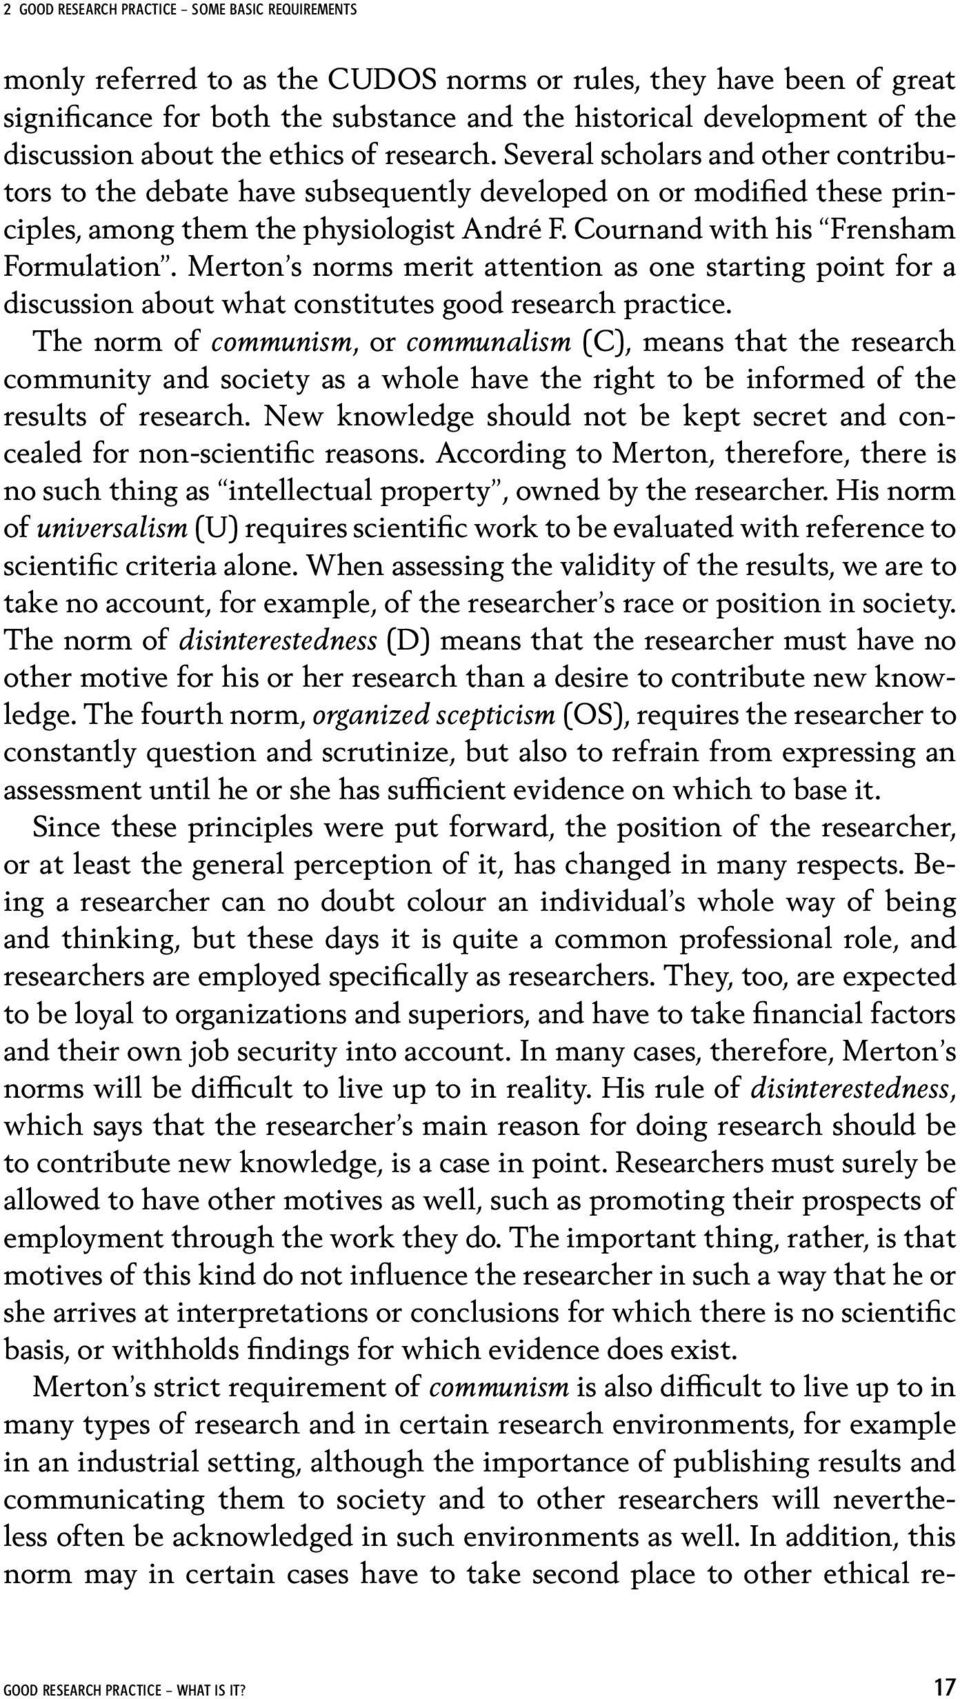 Cournand with his Frensham Formulation. Merton s norms merit attention as one starting point for a discussion about what constitutes good research practice.